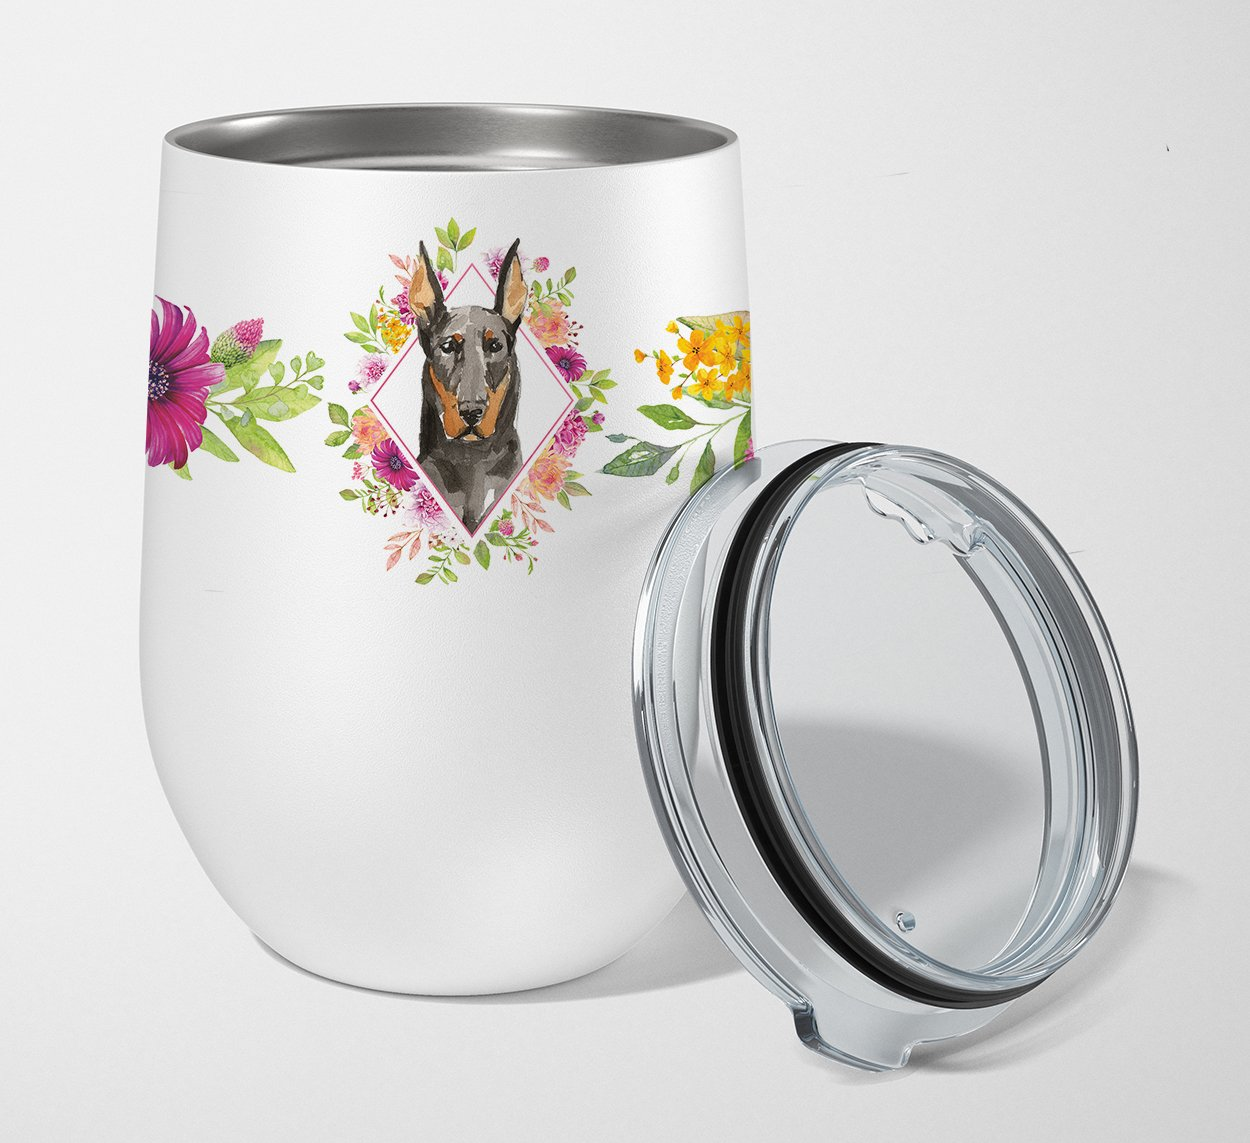 Doberman Pinsher Pink Flowers Stainless Steel 12 oz Stemless Wine Glass CK4241TBL12 by Caroline's Treasures